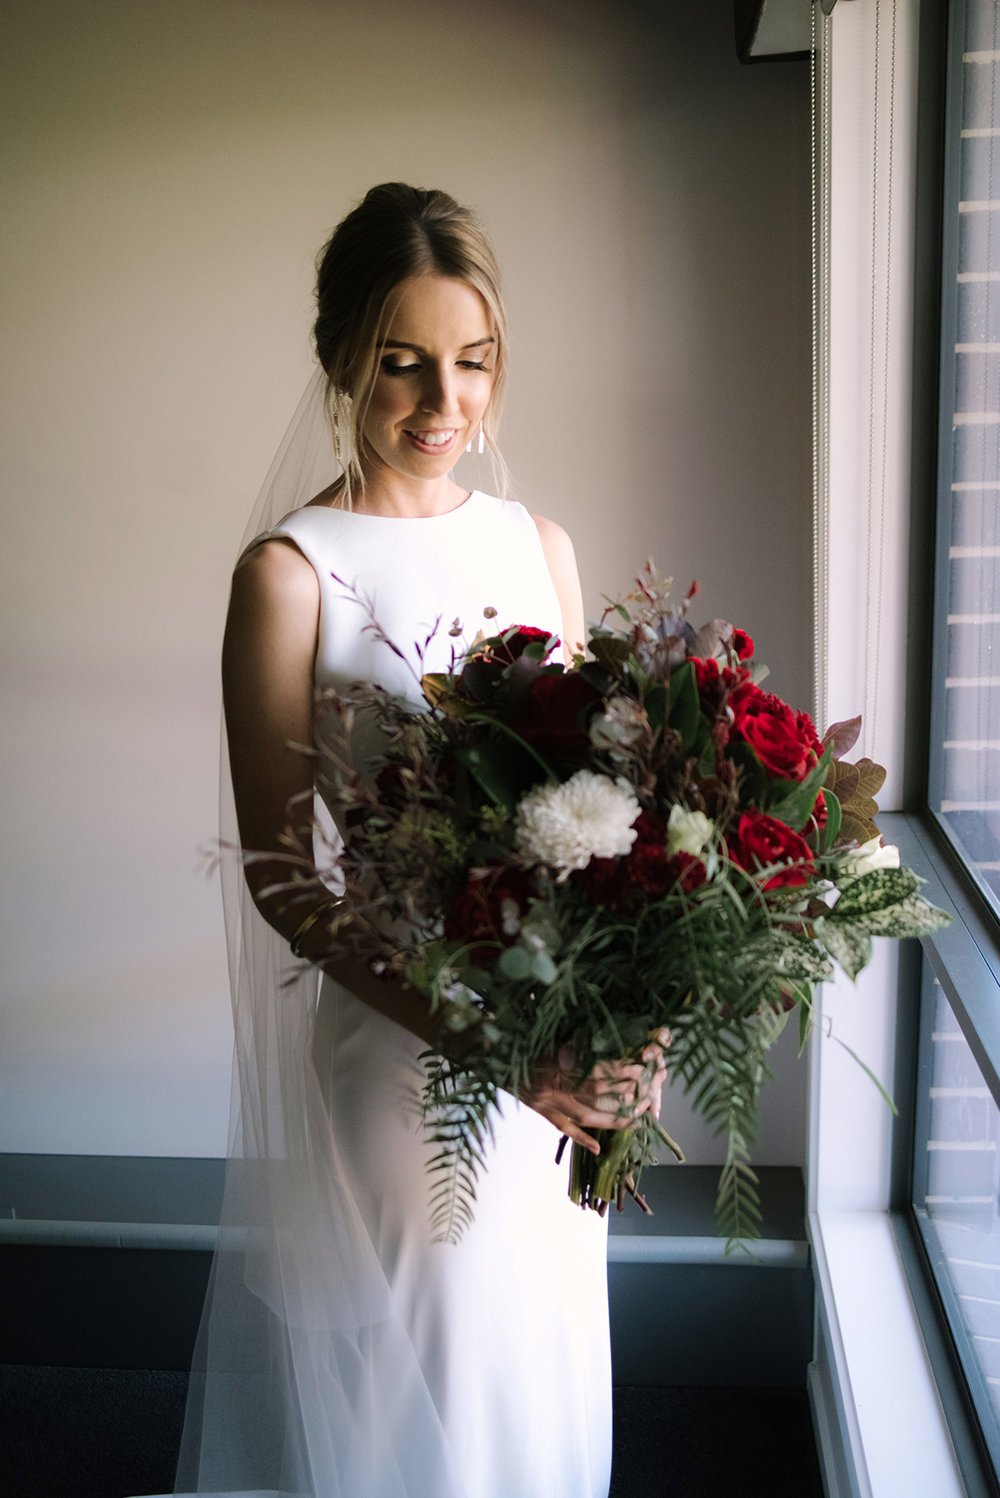 I_Got_You_Babe_Co._Megan_Andrew_Country_Property_Wedding_Victoria0010.JPG